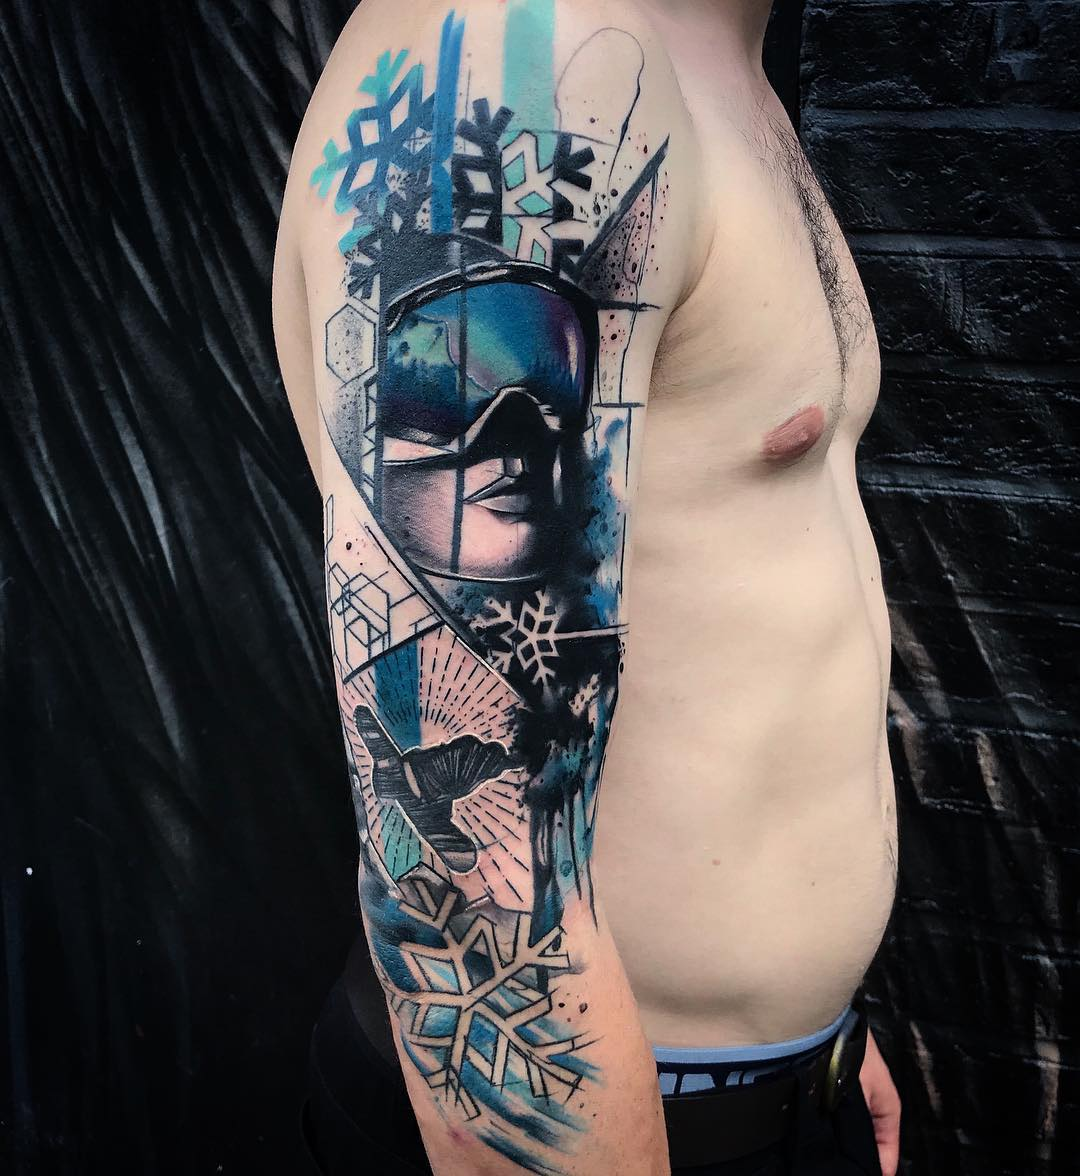 Killer Ink Tattoo On Twitter Dope Half Fresh Half Healed Piece By Tom Petucco With Killerinktattoo Supplies Killerink Tattoo Tattoos Bodyart Ink Tattooartist Tattooart Snowboarding Https T Co X1inoutjio